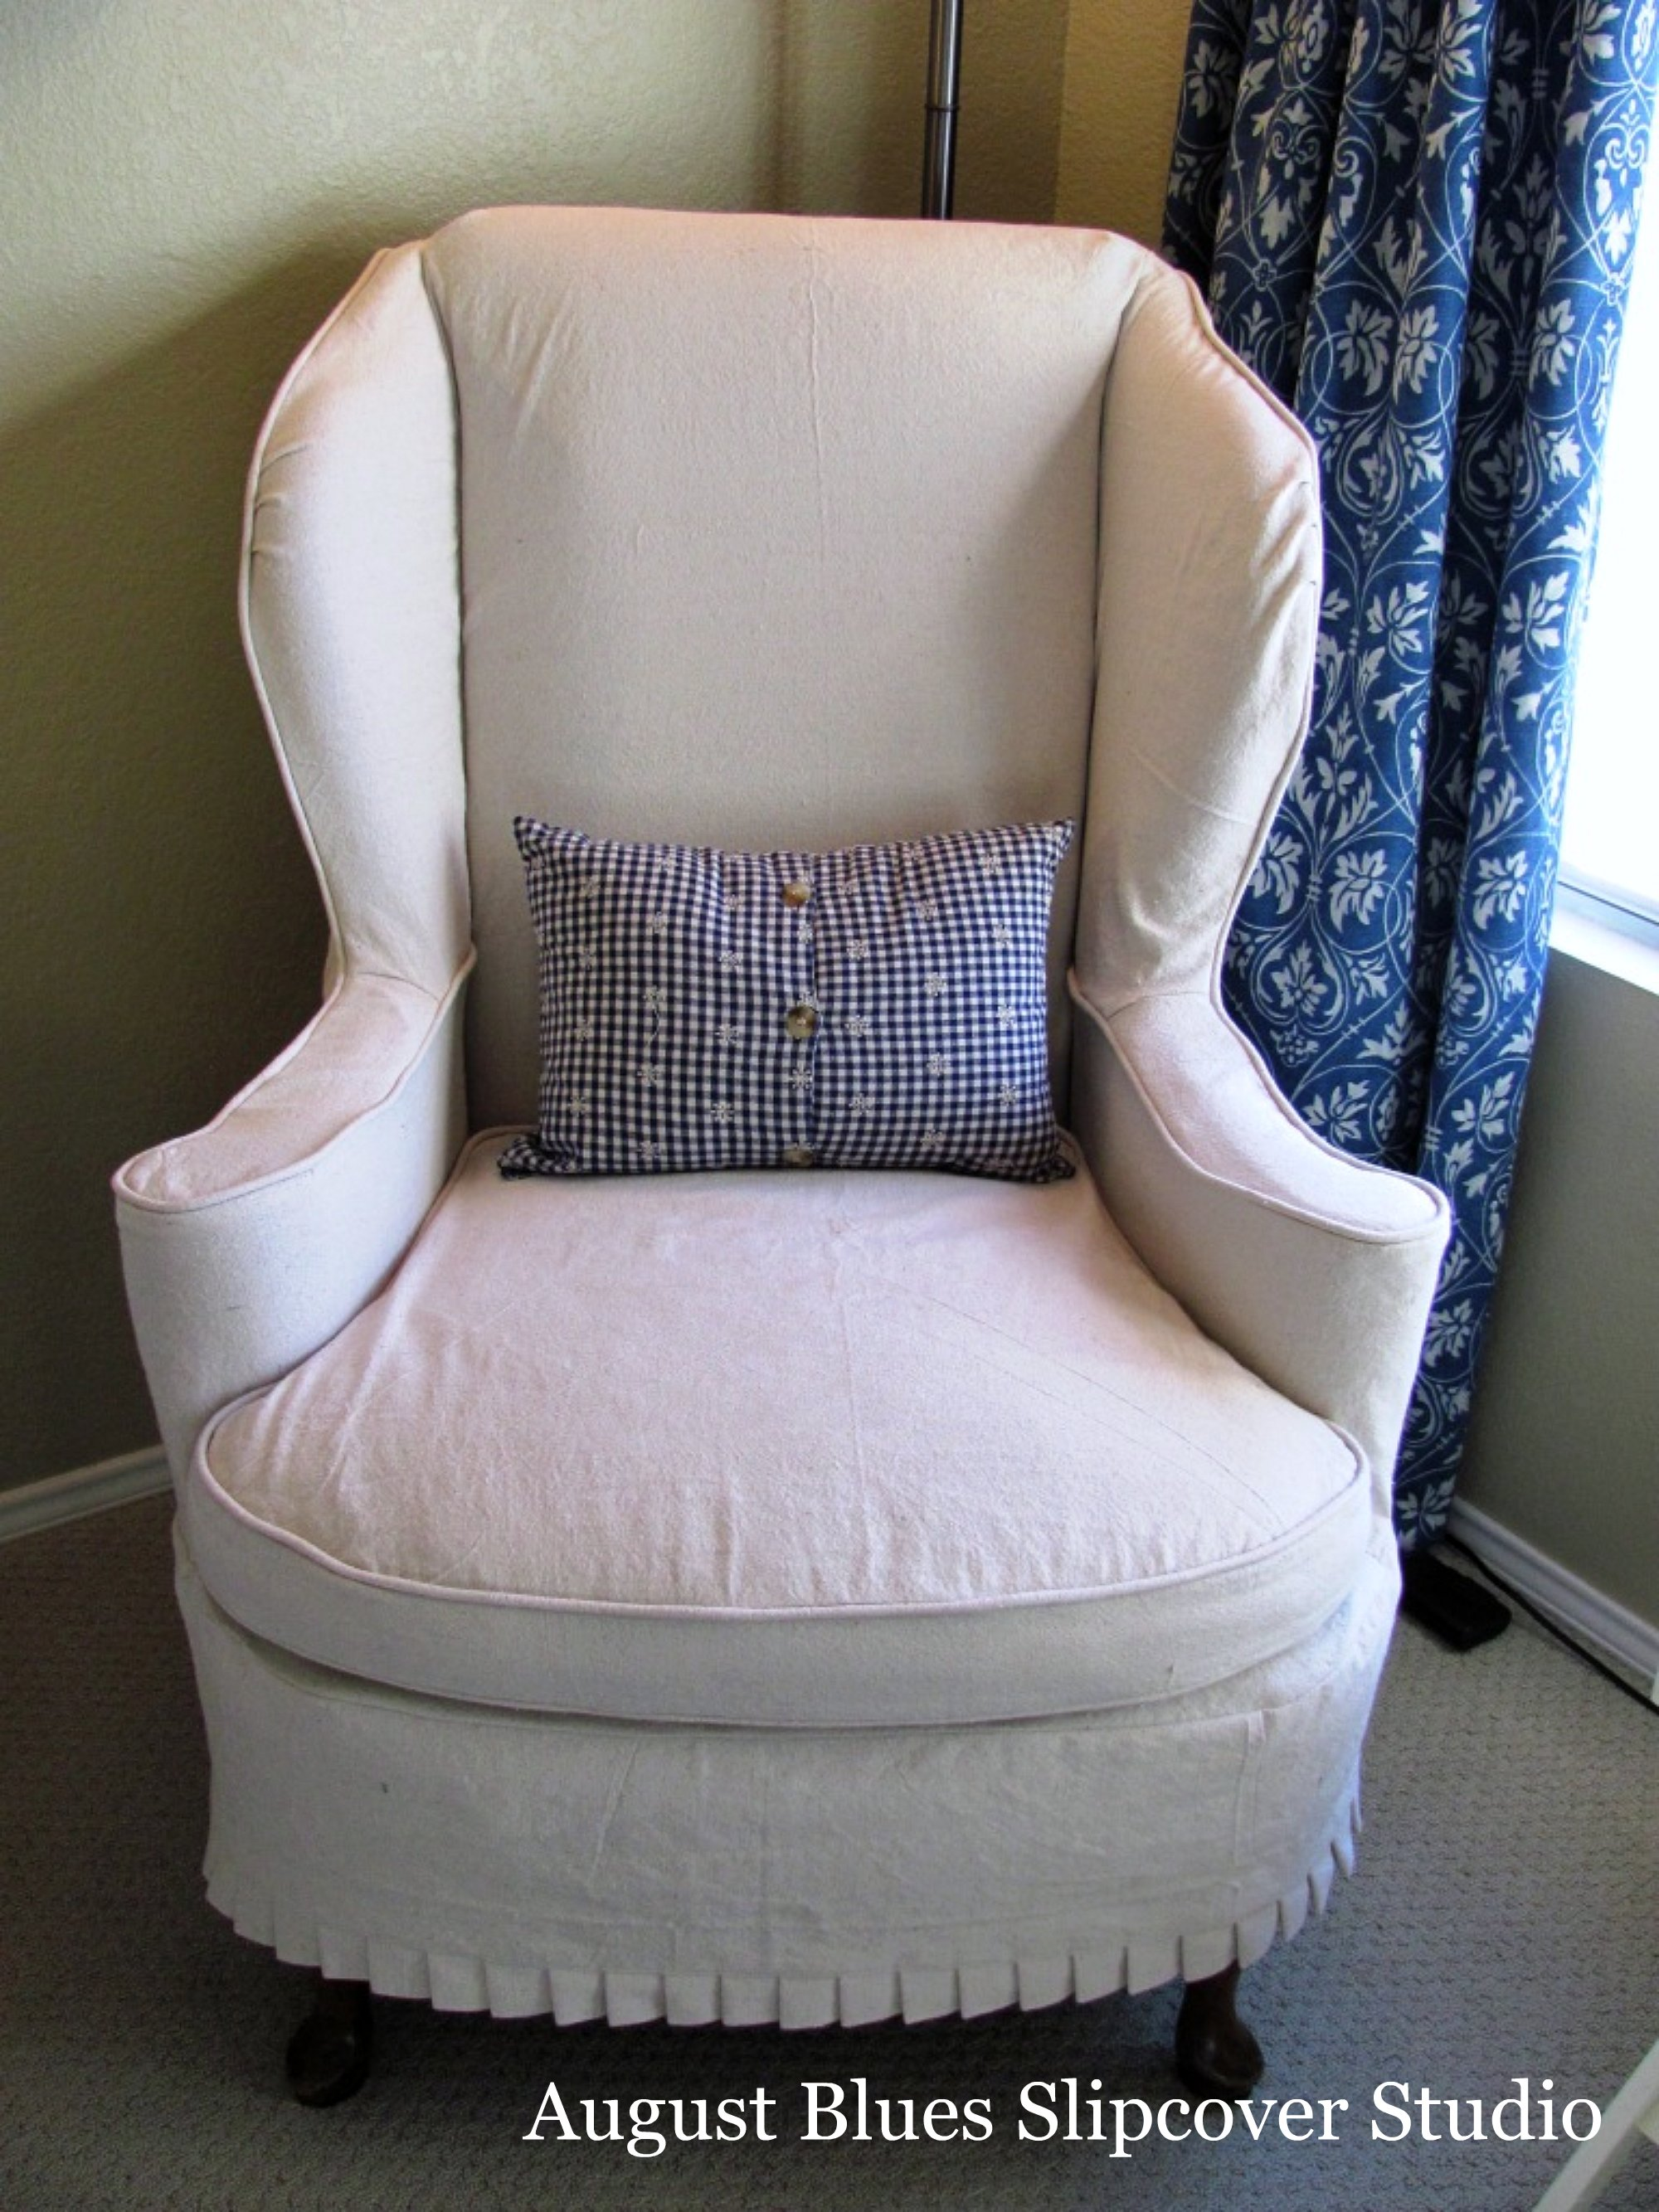 August Blues - Wing Chair dropcloth slipcover